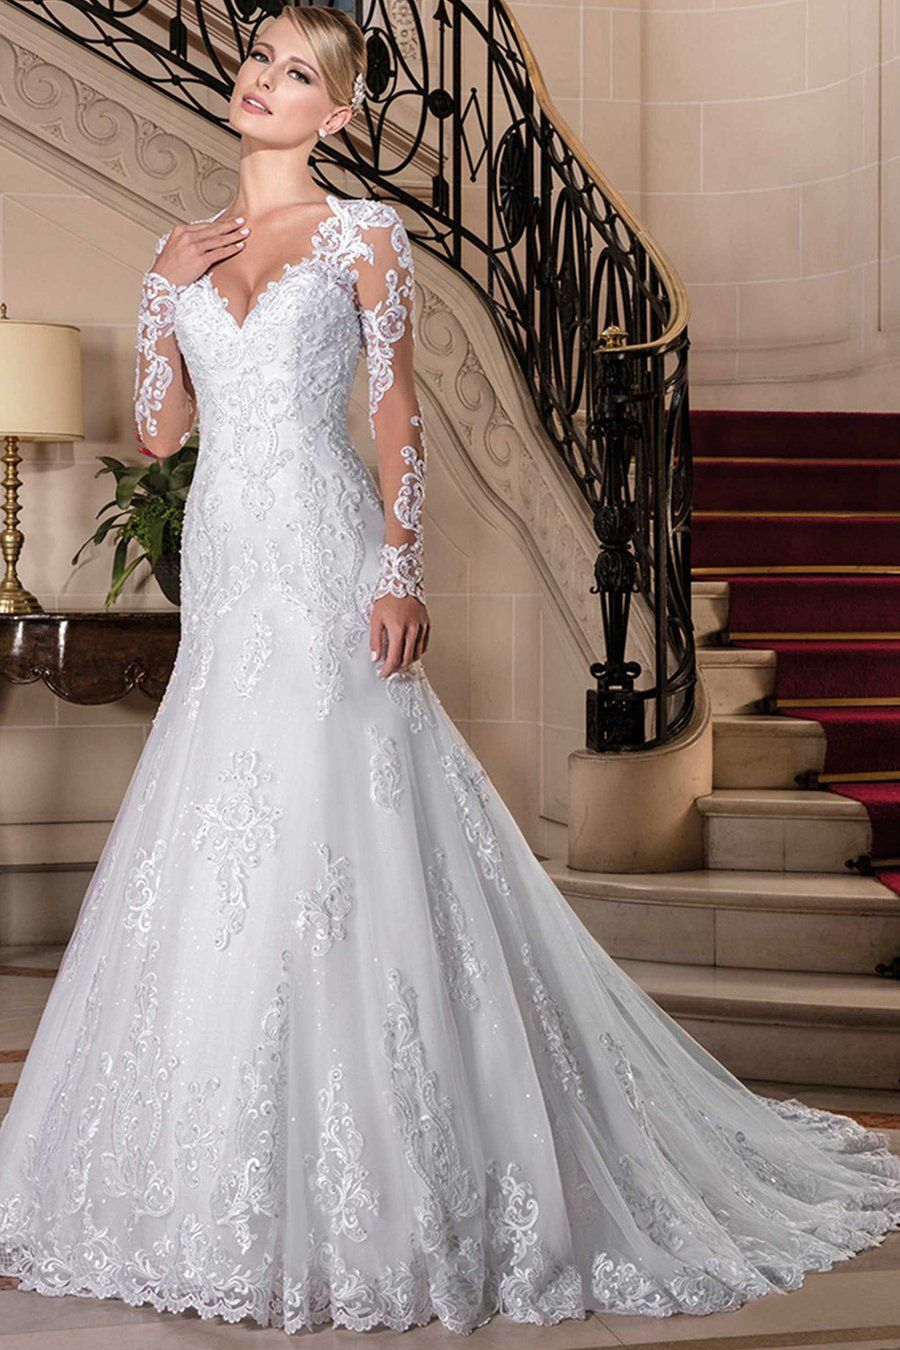 V-Neck Long Sleeves Wedding Dresses with Lace Appliques 88d67bf042e2